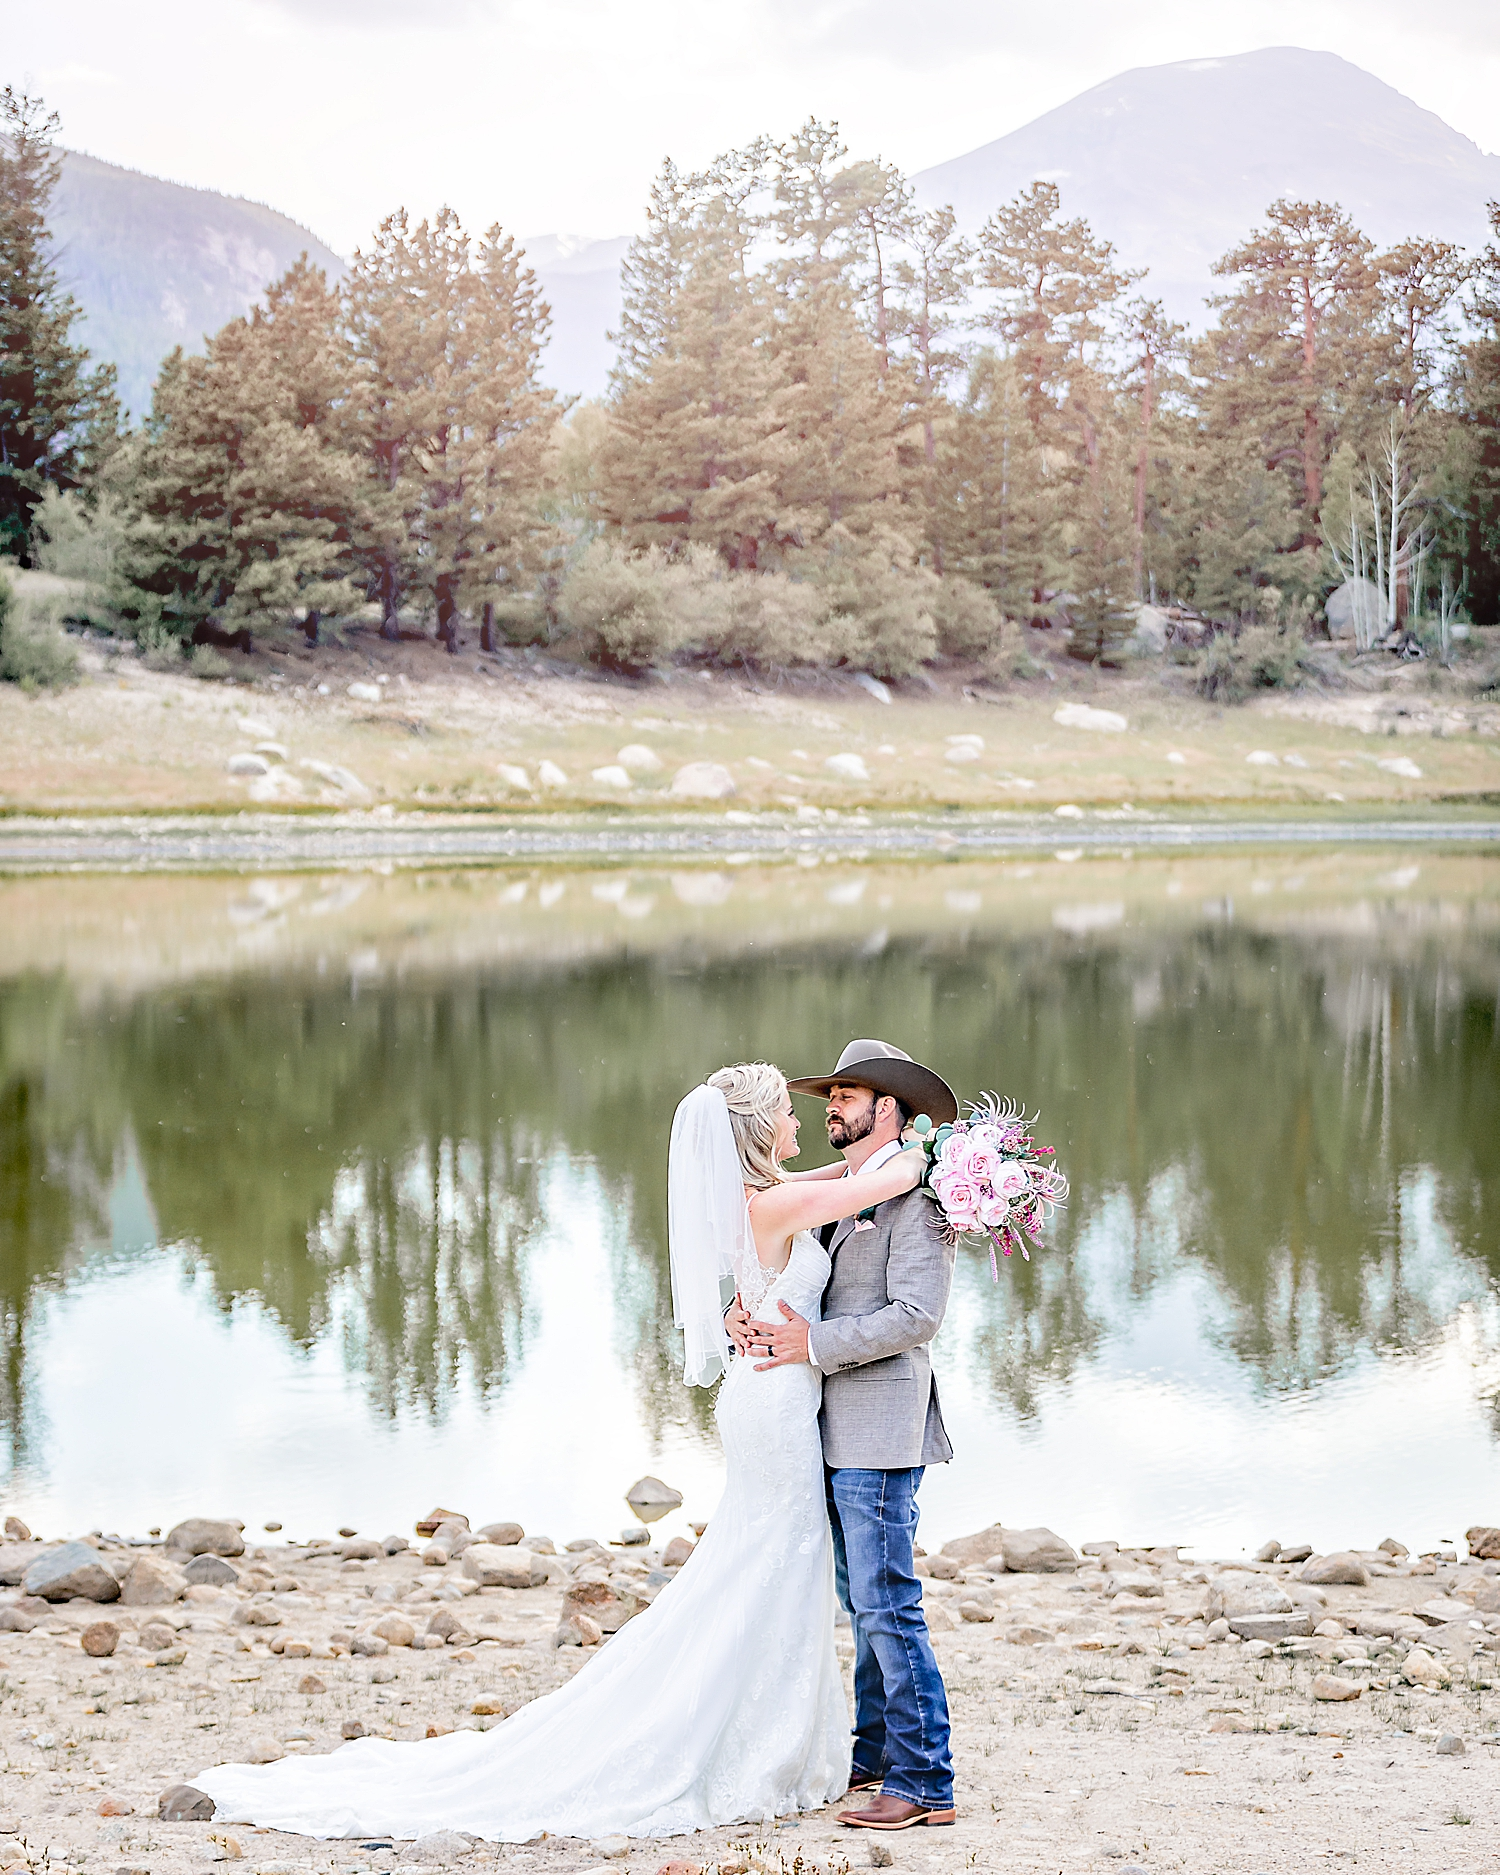 Carly-Barton-Photography-Rocky-Mountain-National-Park-Estes-Park-Wedding-Elopement_0016.jpg